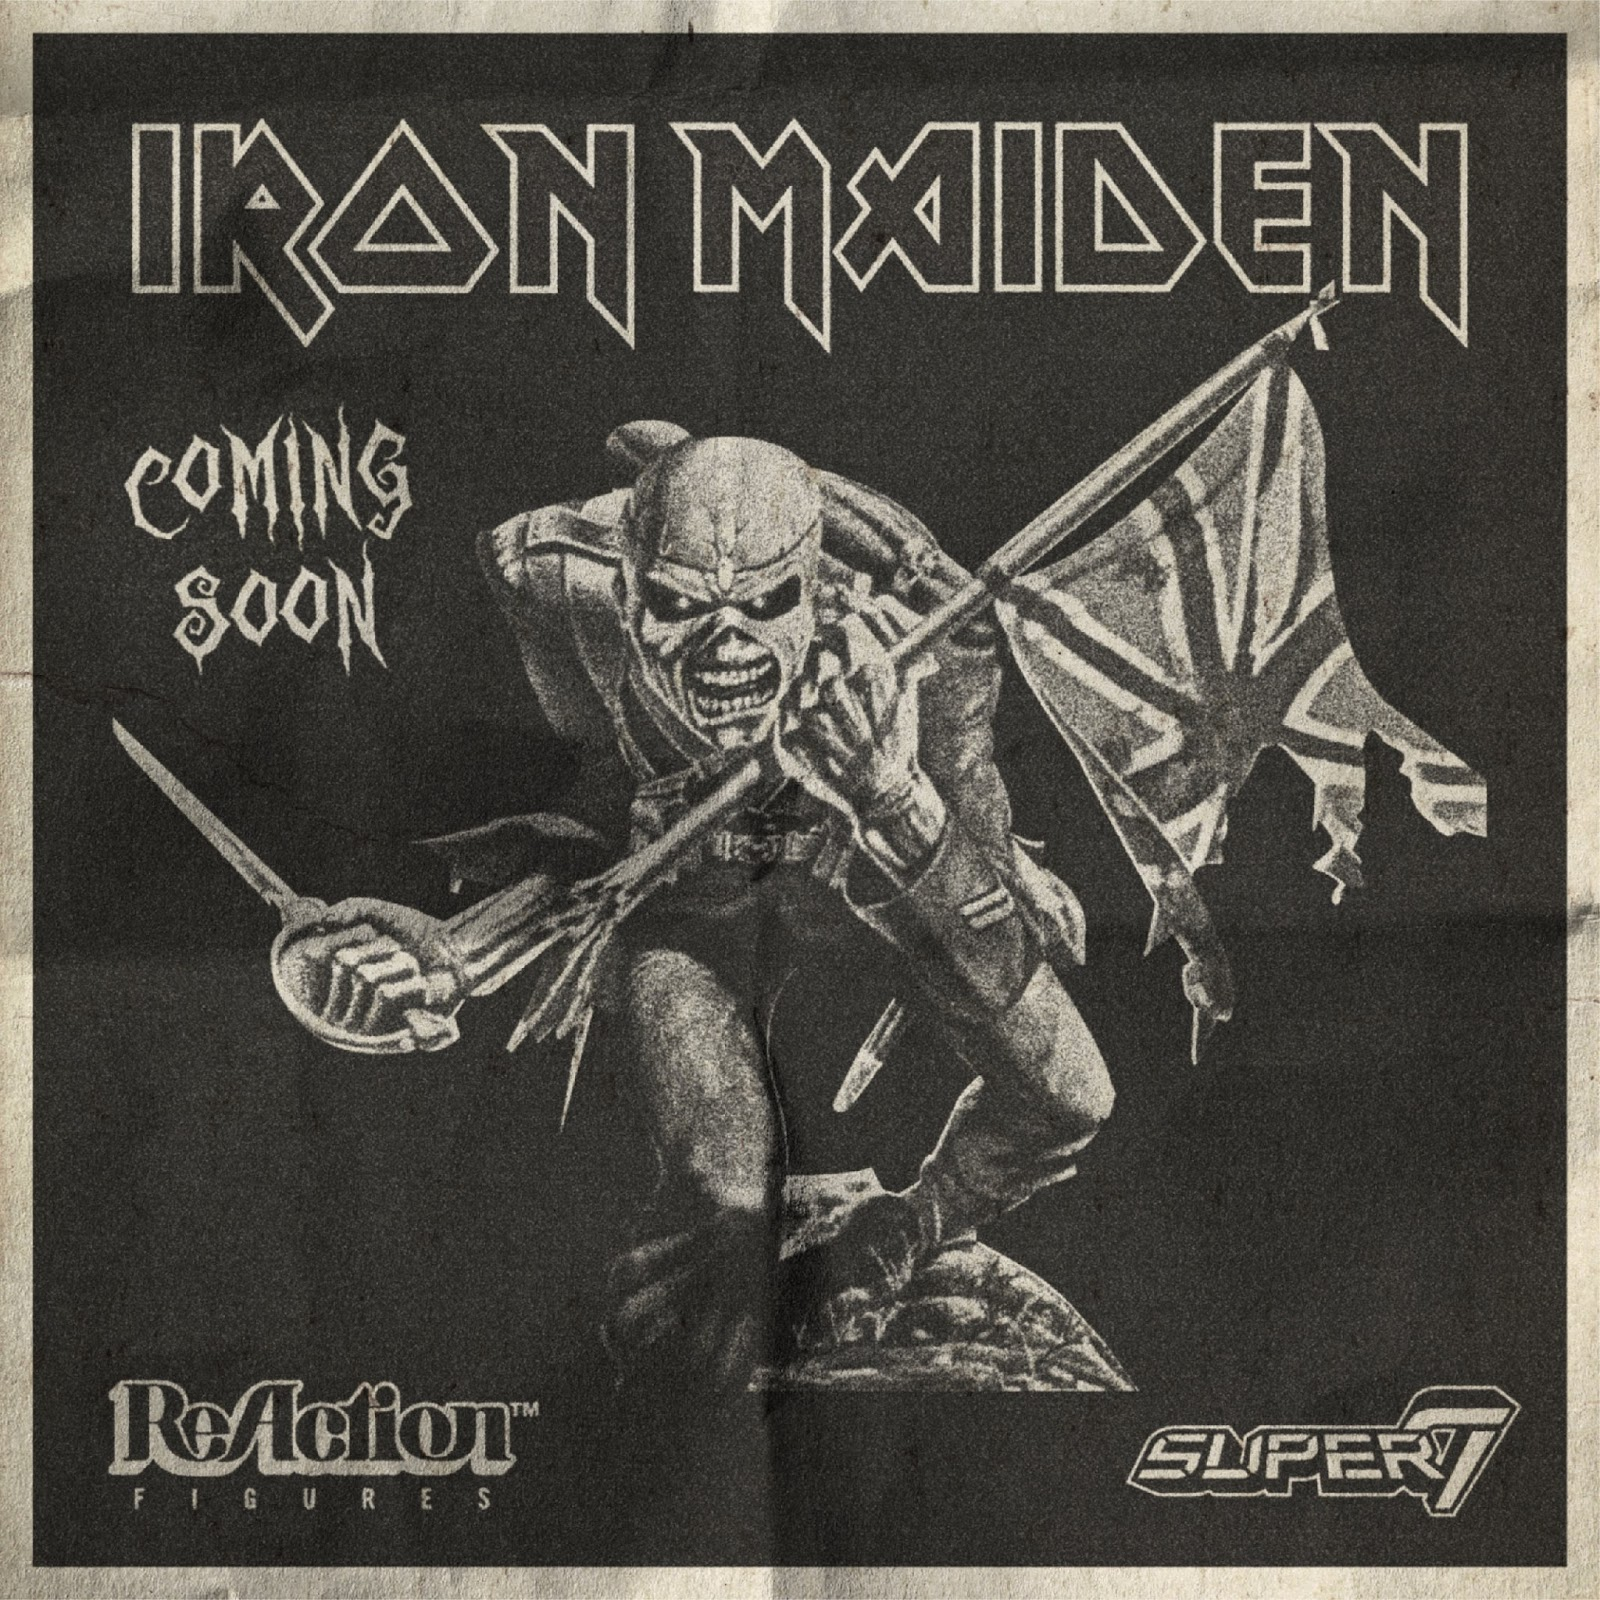 Iron Maiden S Eddie As M U S C L E Reaction Figures Coming From